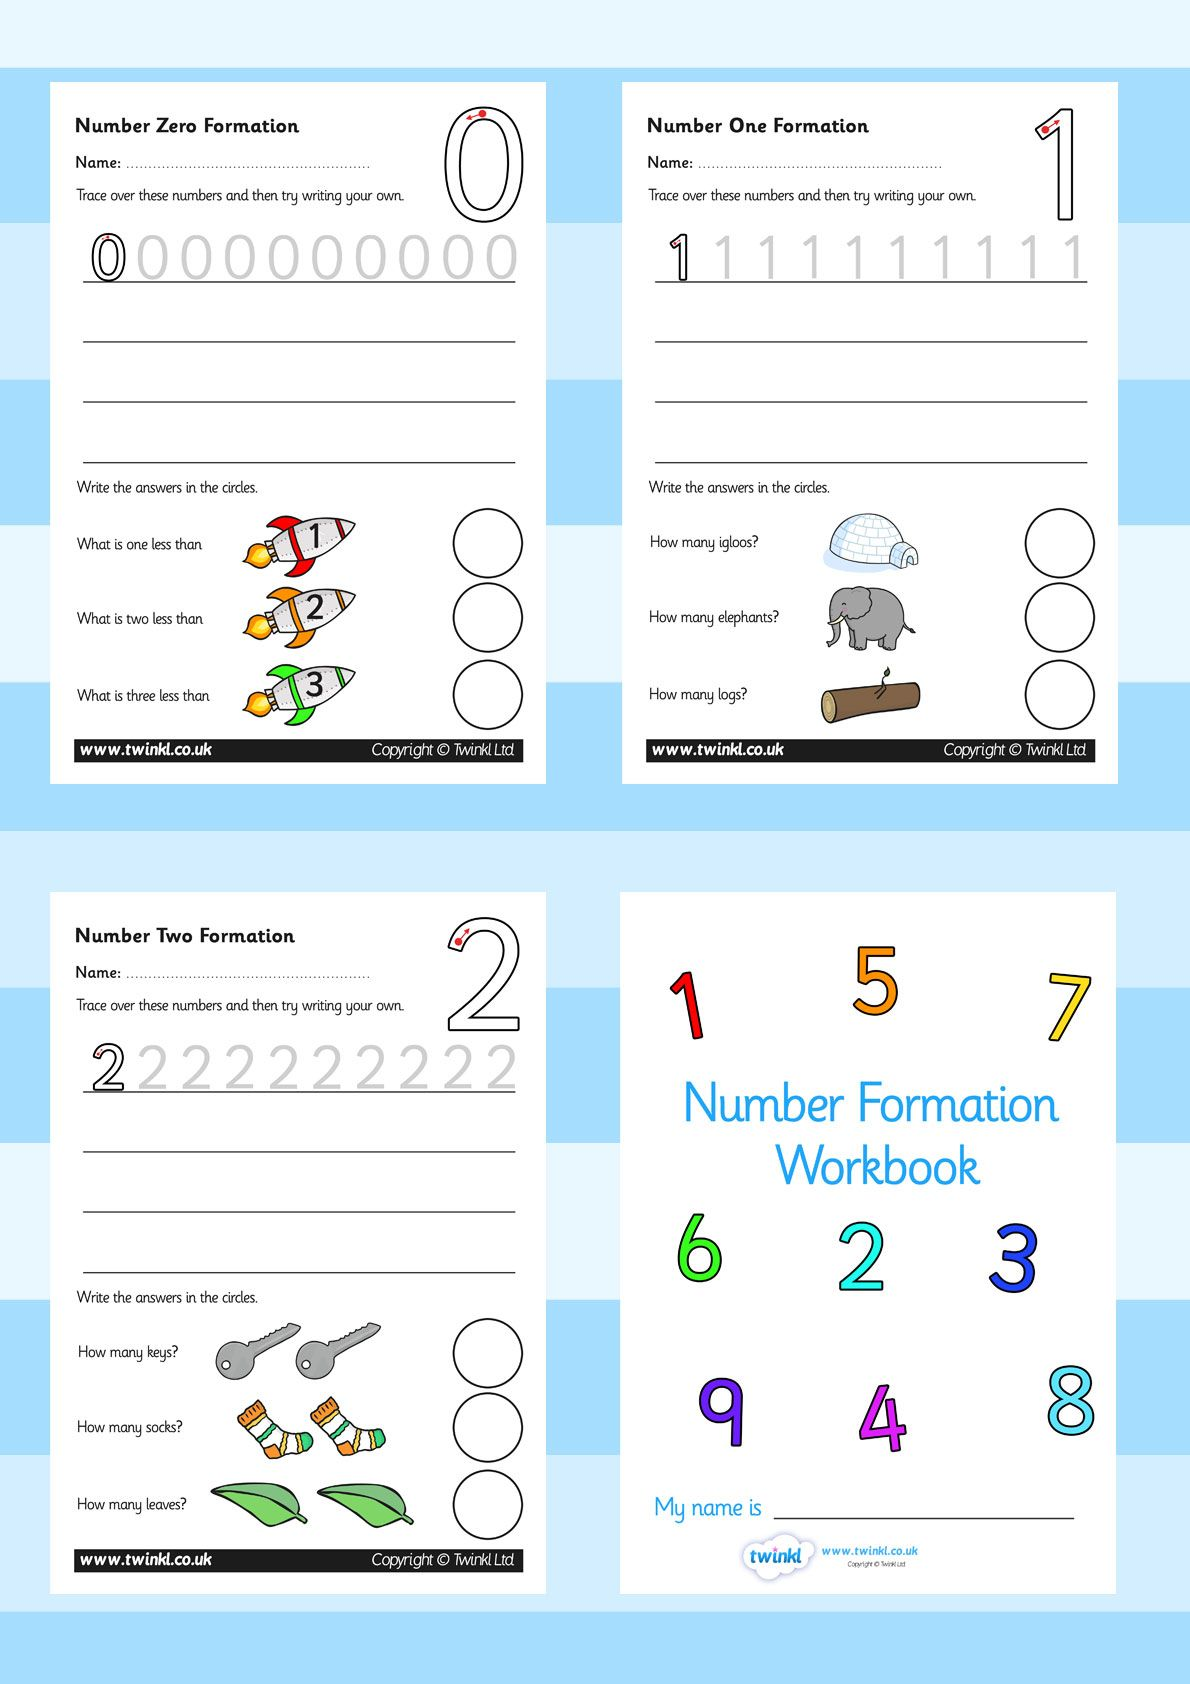 Twinkl Resources Gt Gt Number Formation Workbook Gt Gt Printable Resources For Primary Eyfs Ks1 And